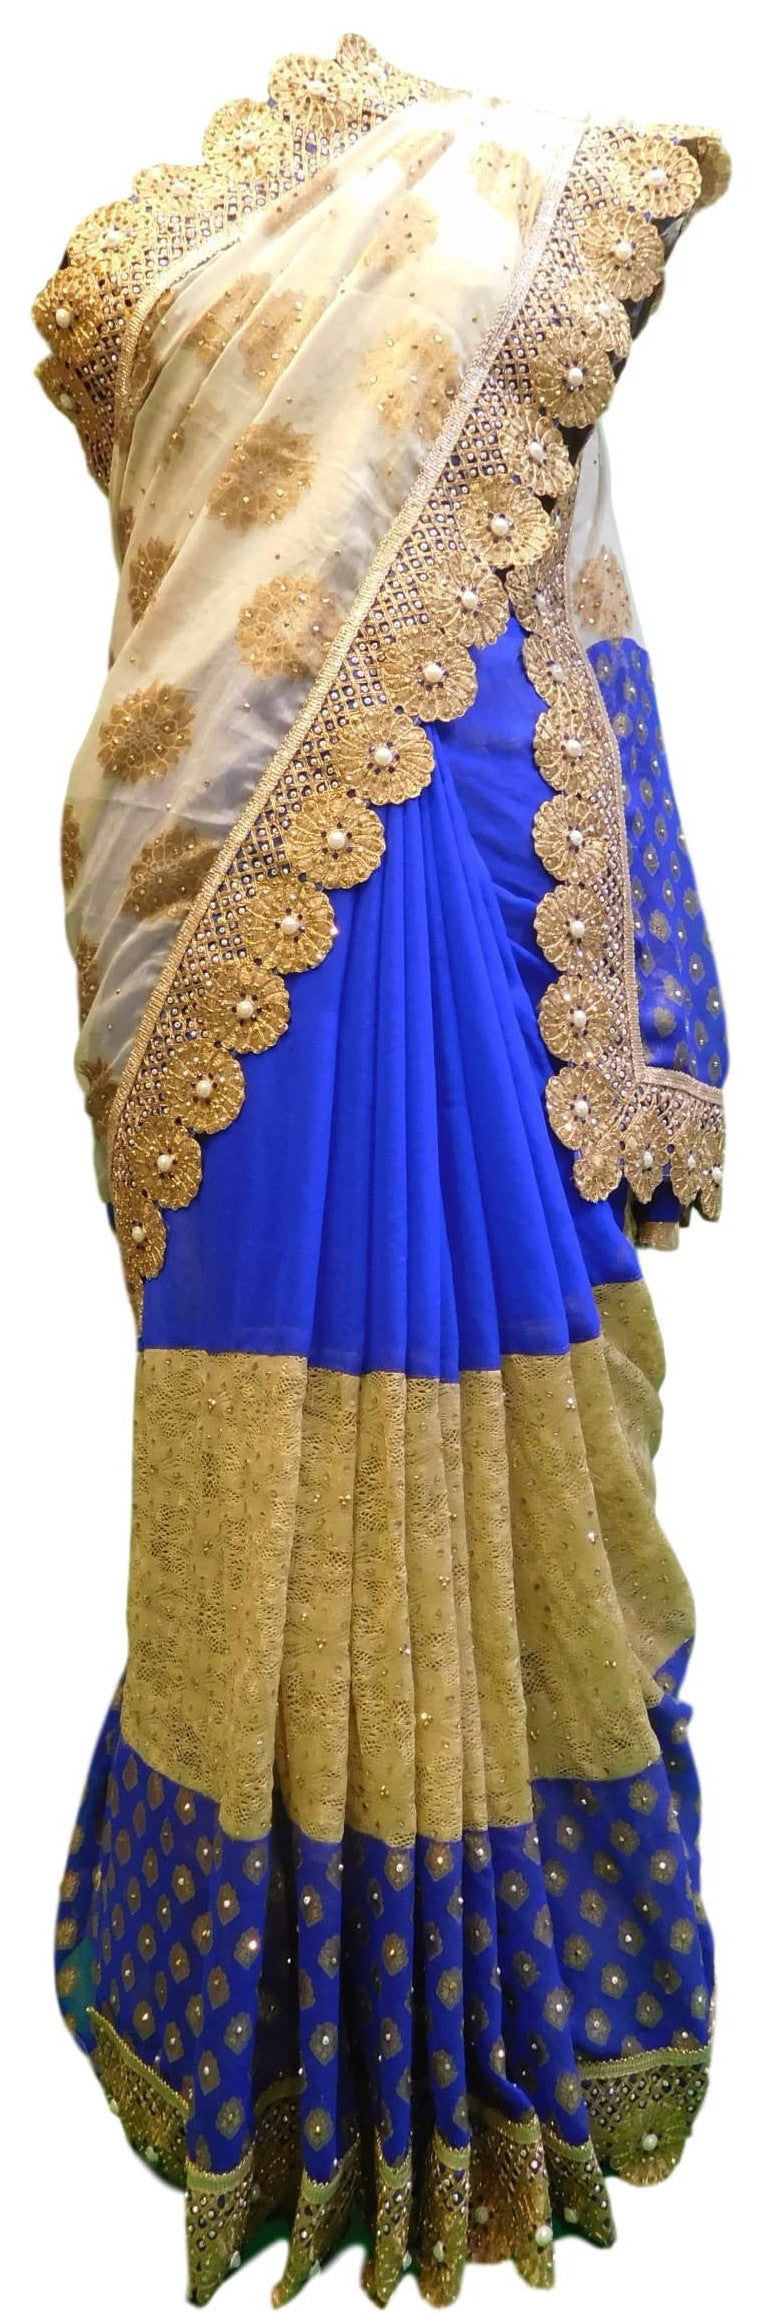 Blue & Cream Designer Georgette Hand Embroidery Stone Border Sari Saree